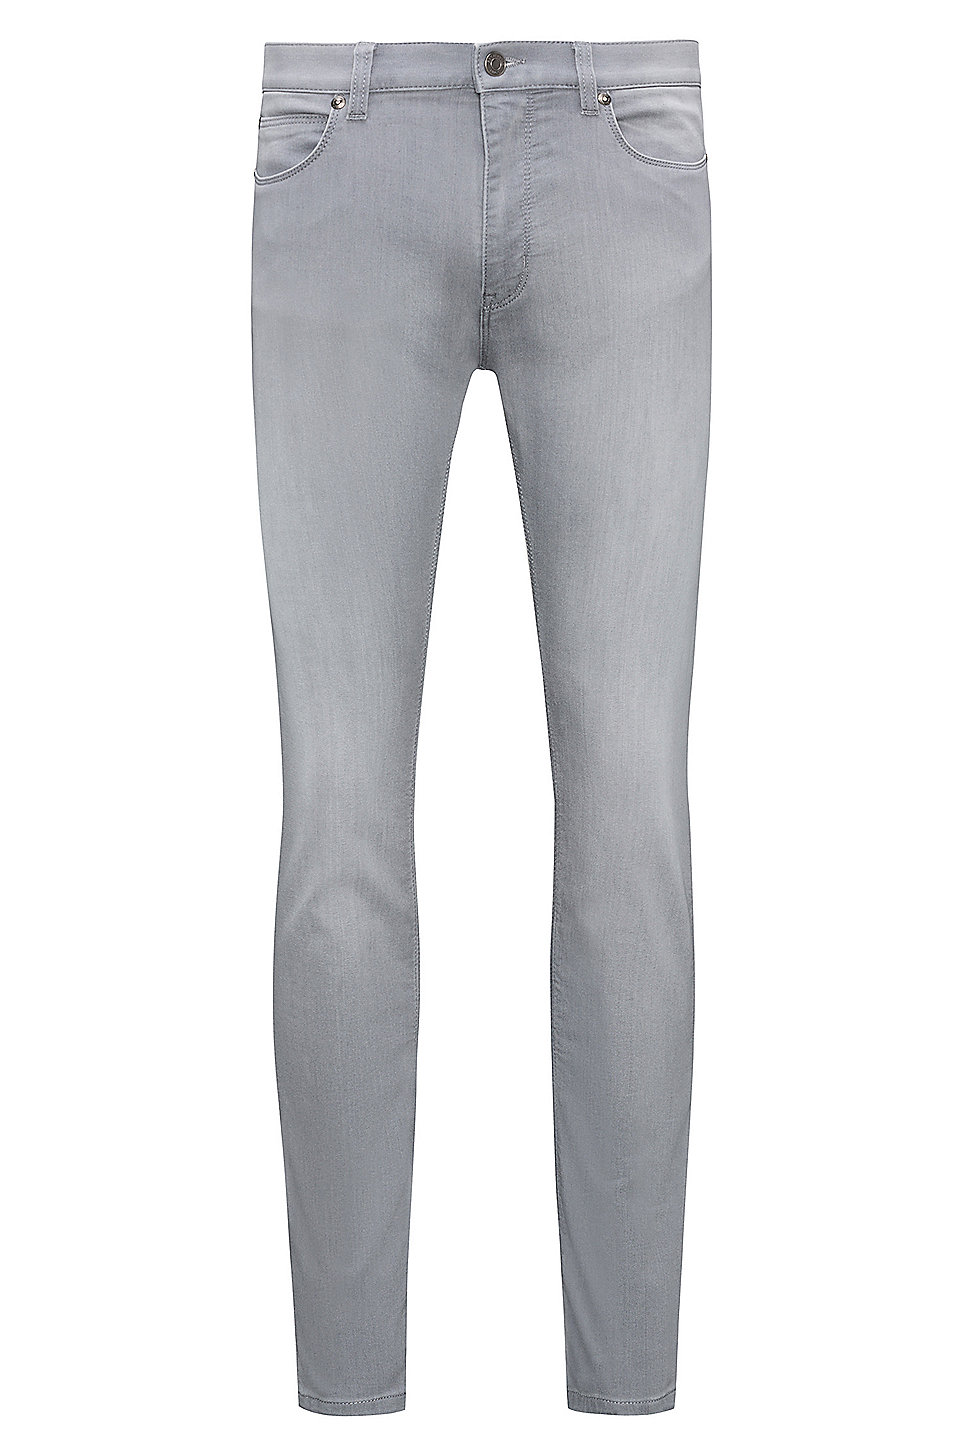 7e14de8a7a7 HUGO - Skinny-fit stretchjeans met lage taille